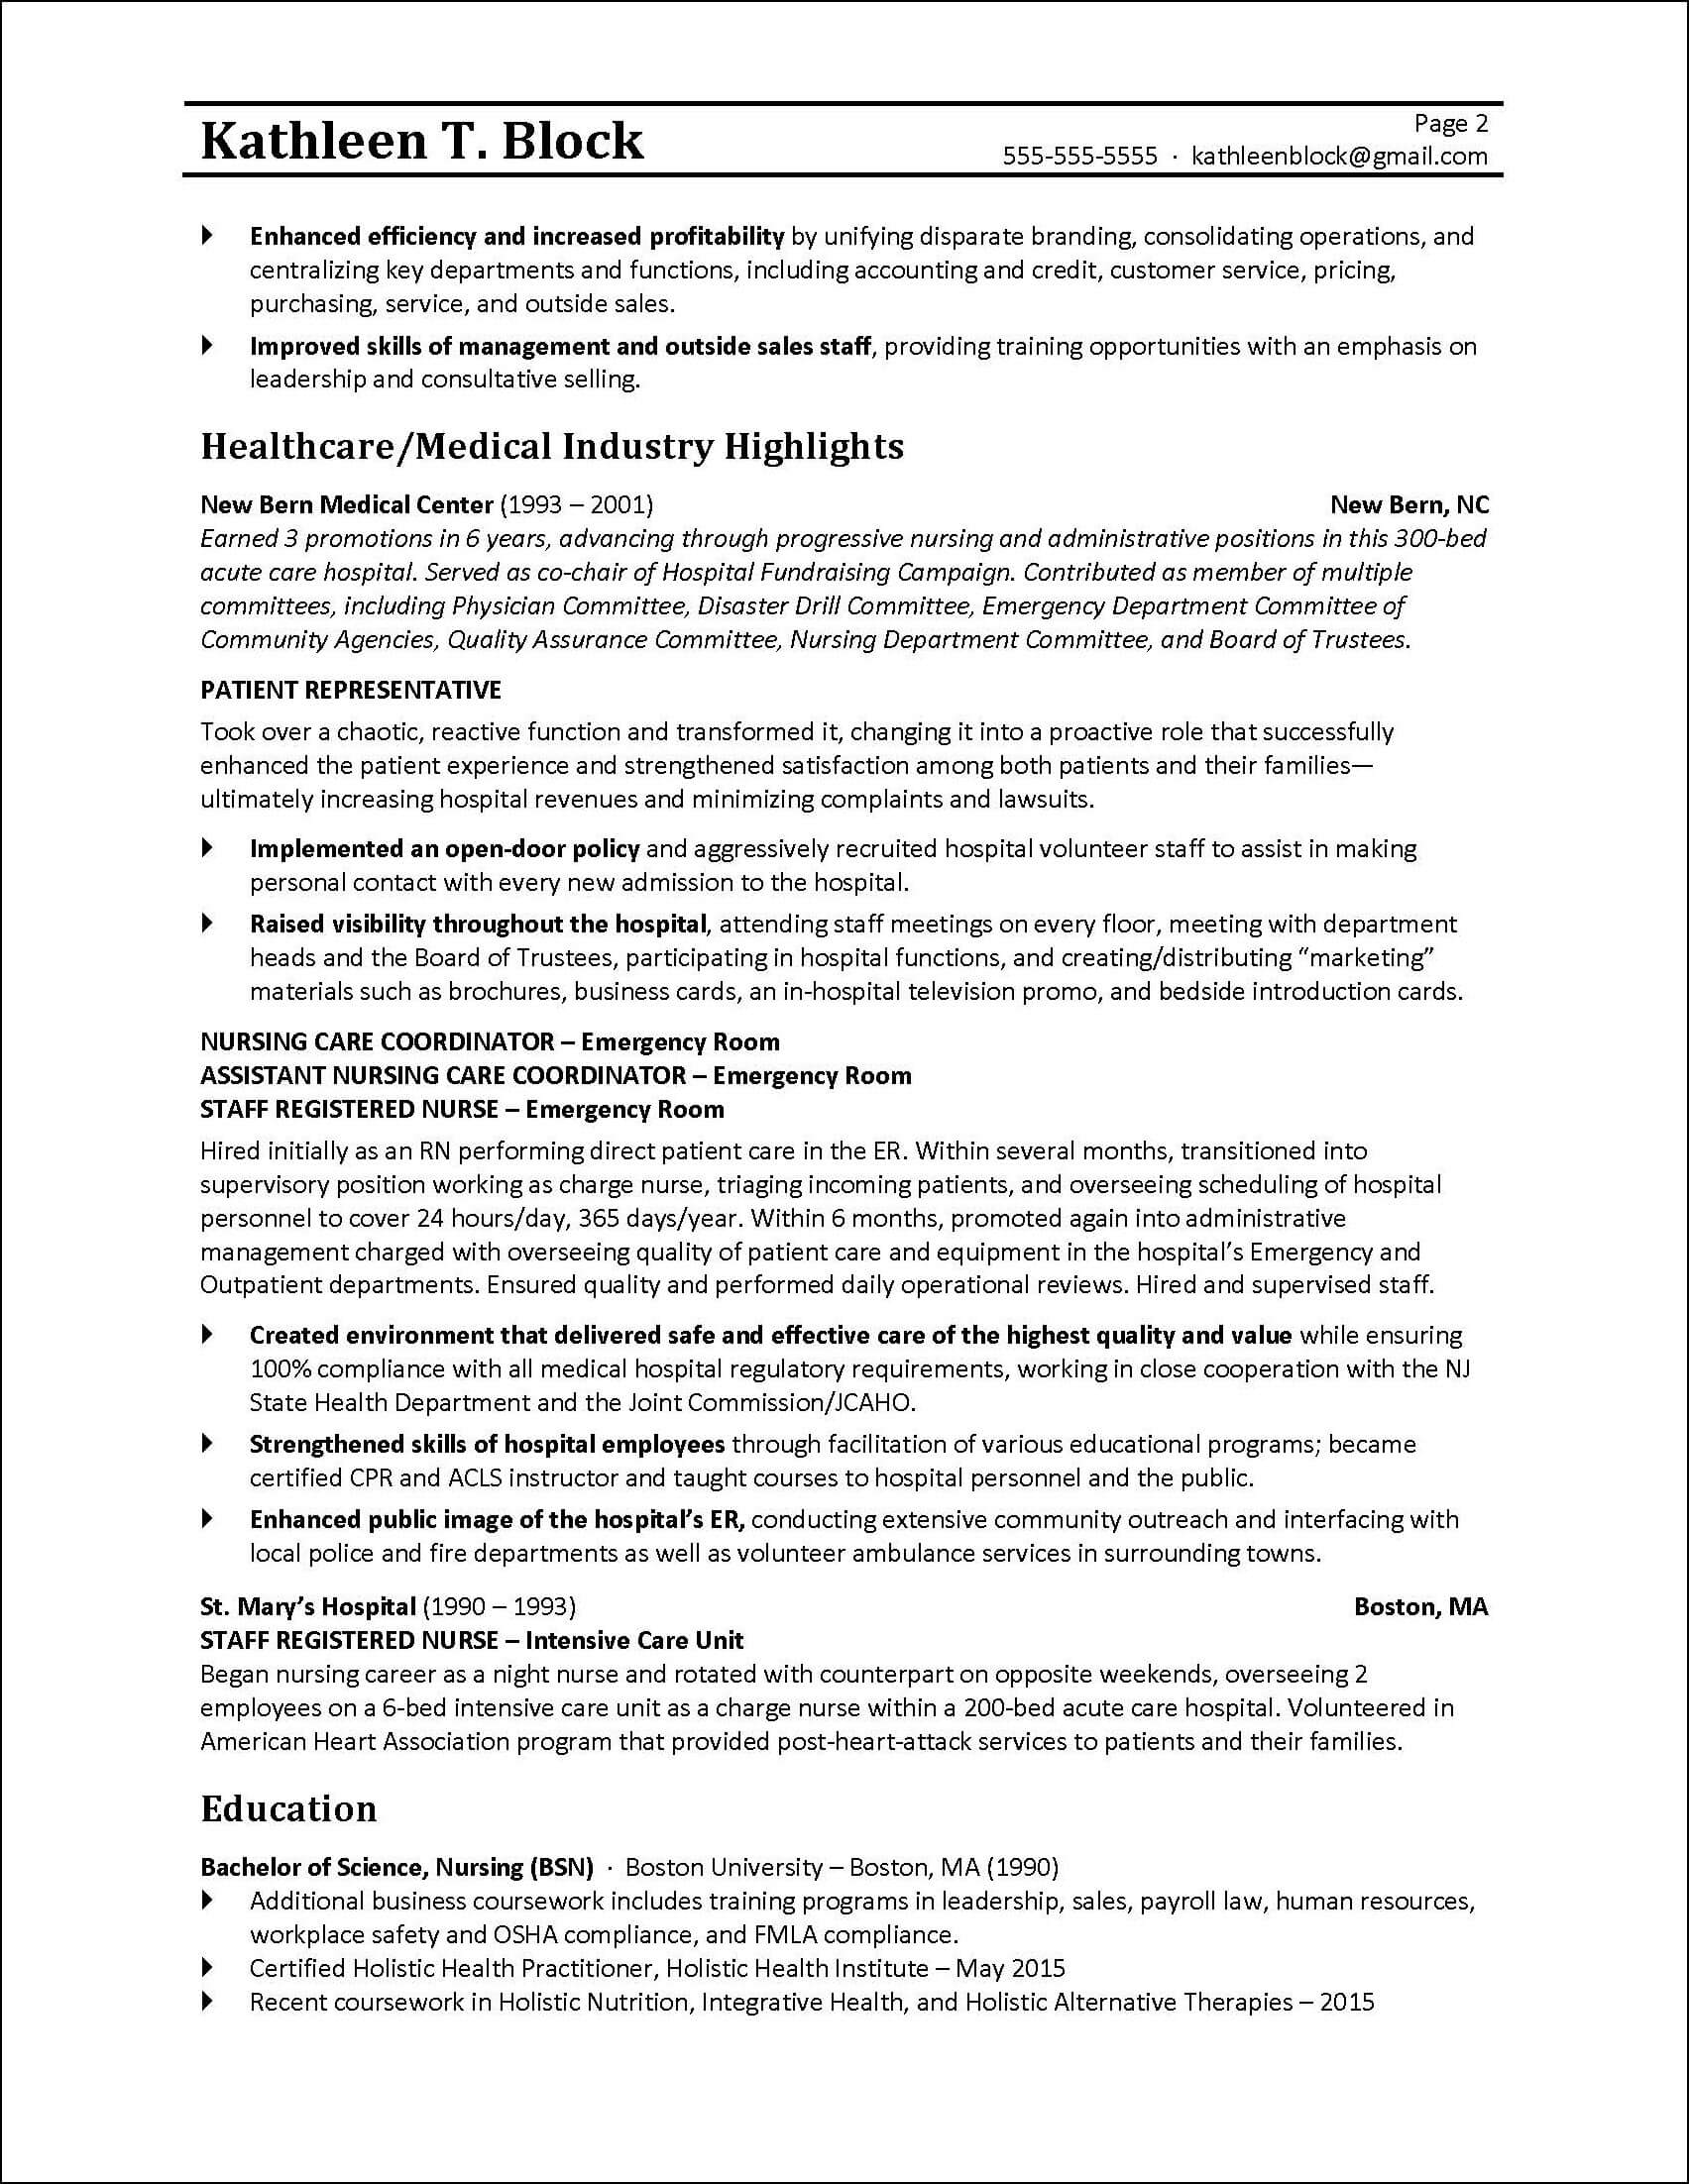 Management Resume Sample  Healthcare Industry. Homemaker On Resume. Best Way To Make A Resume. Create A Free Resume. How To Make Resume For Job. What To Include With A Resume. I Lied On My Resume. Skills To Put In A Resume. Is An Objective Necessary On A Resume